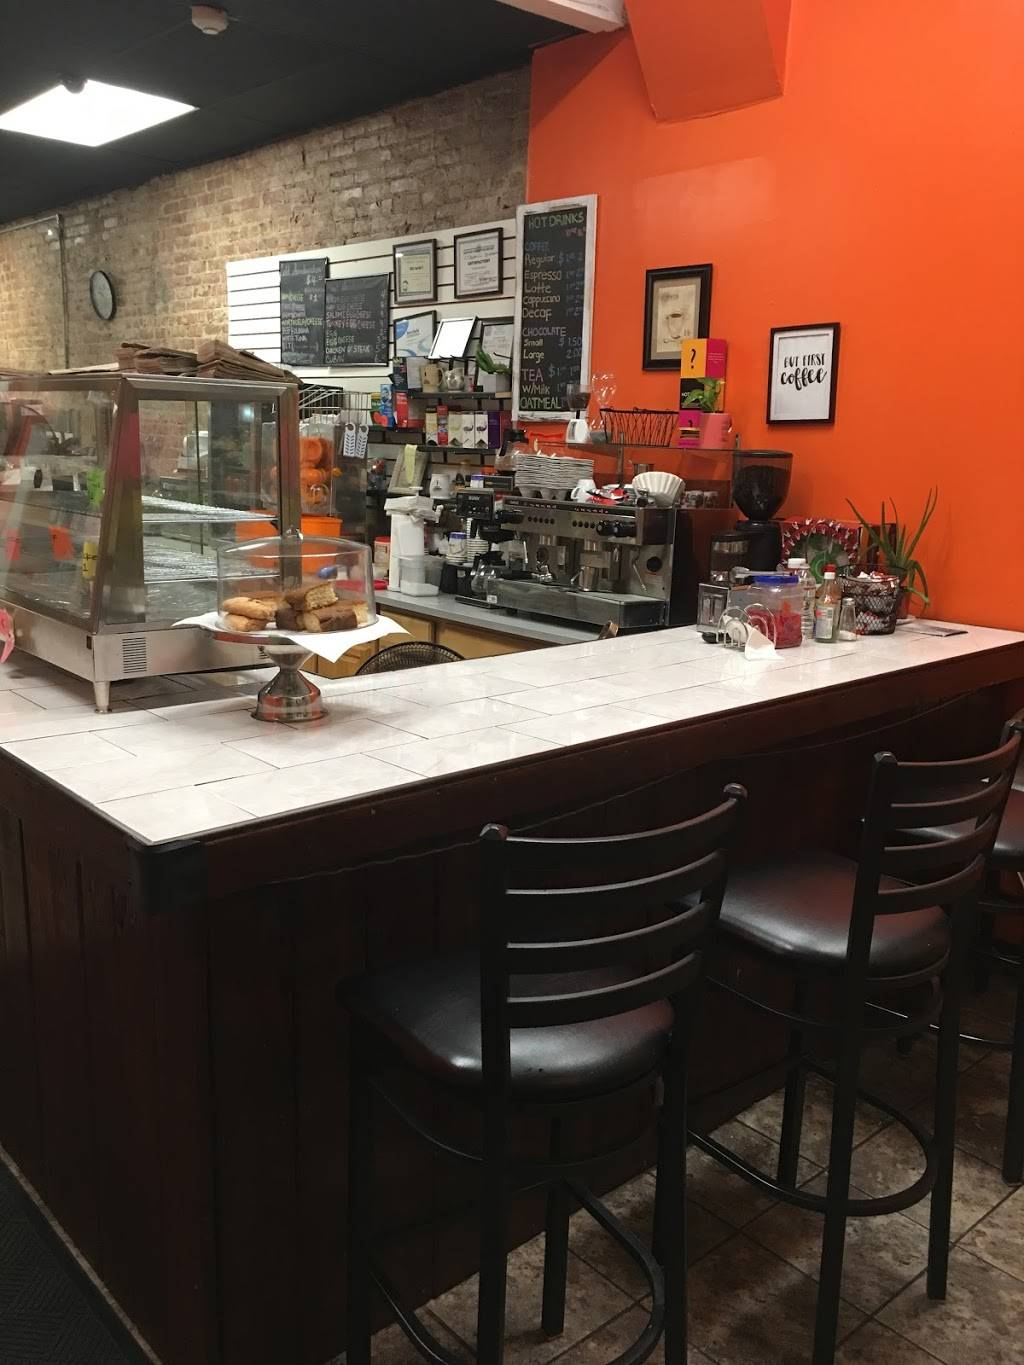 Gordo's Kitchen And deli | restaurant | 736 West Side Ave, Jersey City, NJ 07306, USA | 2018395168 OR +1 201-839-5168